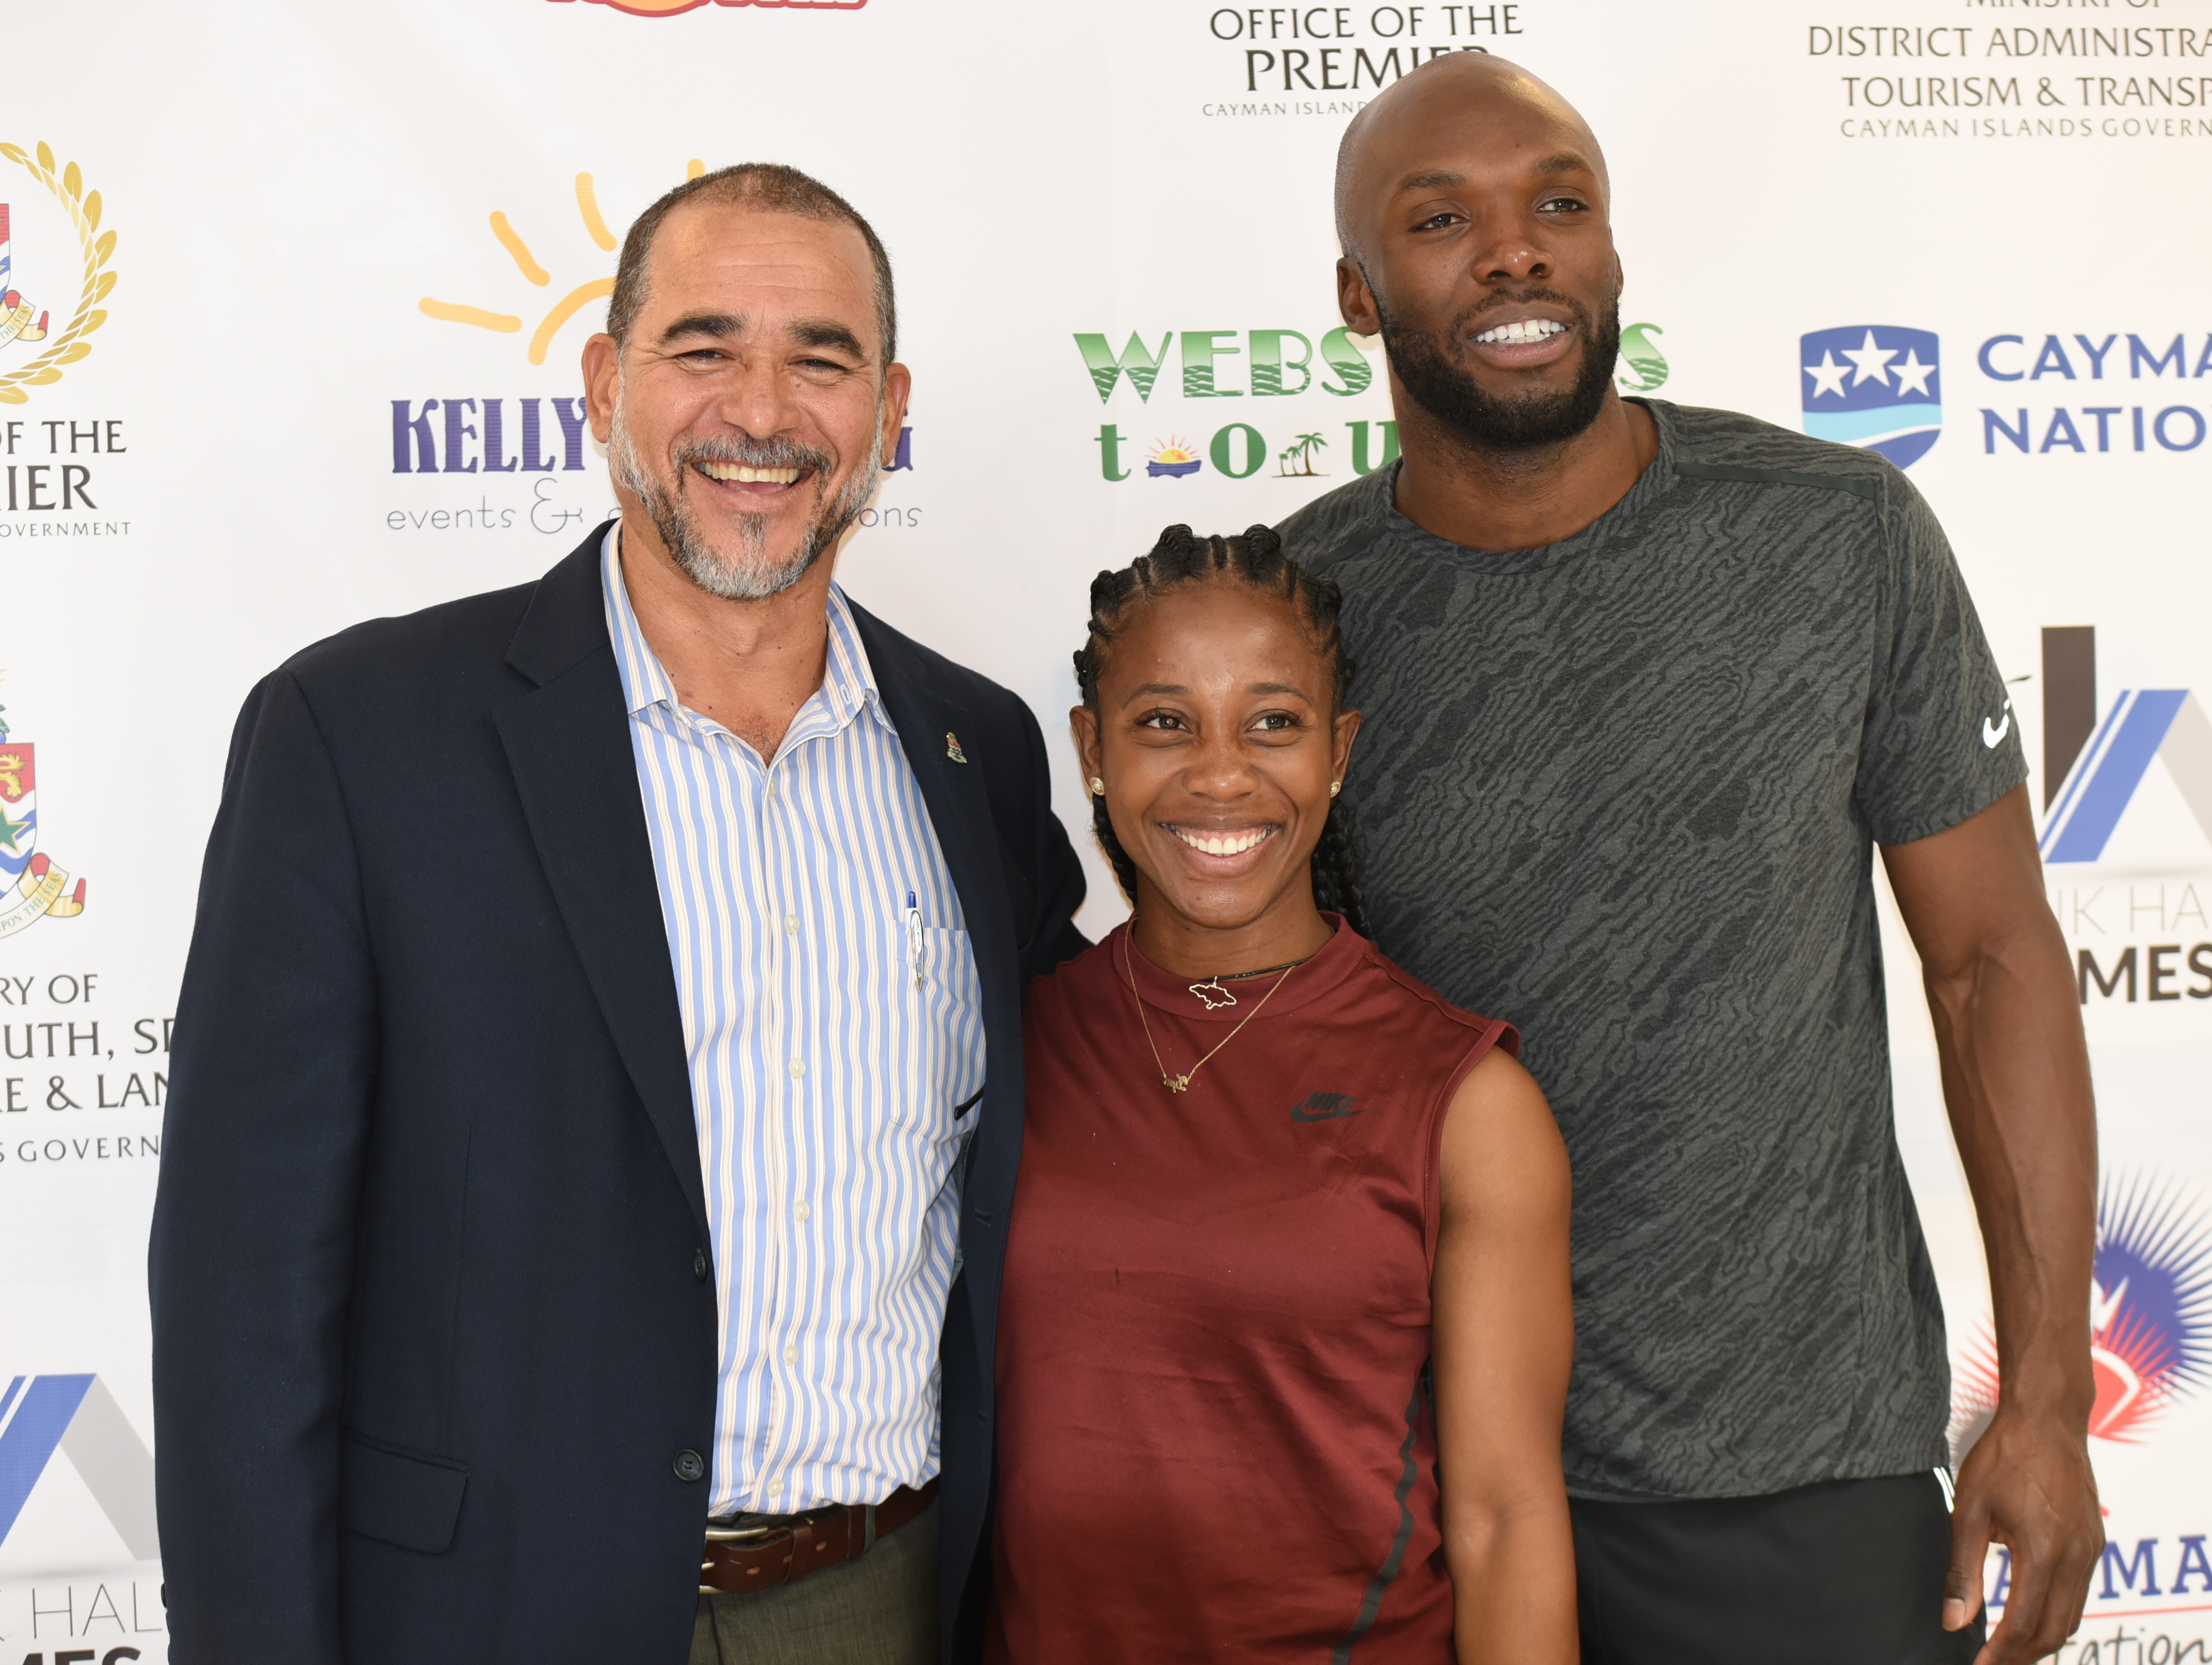 Photos of Cayman Invitational 2018 Press Conference